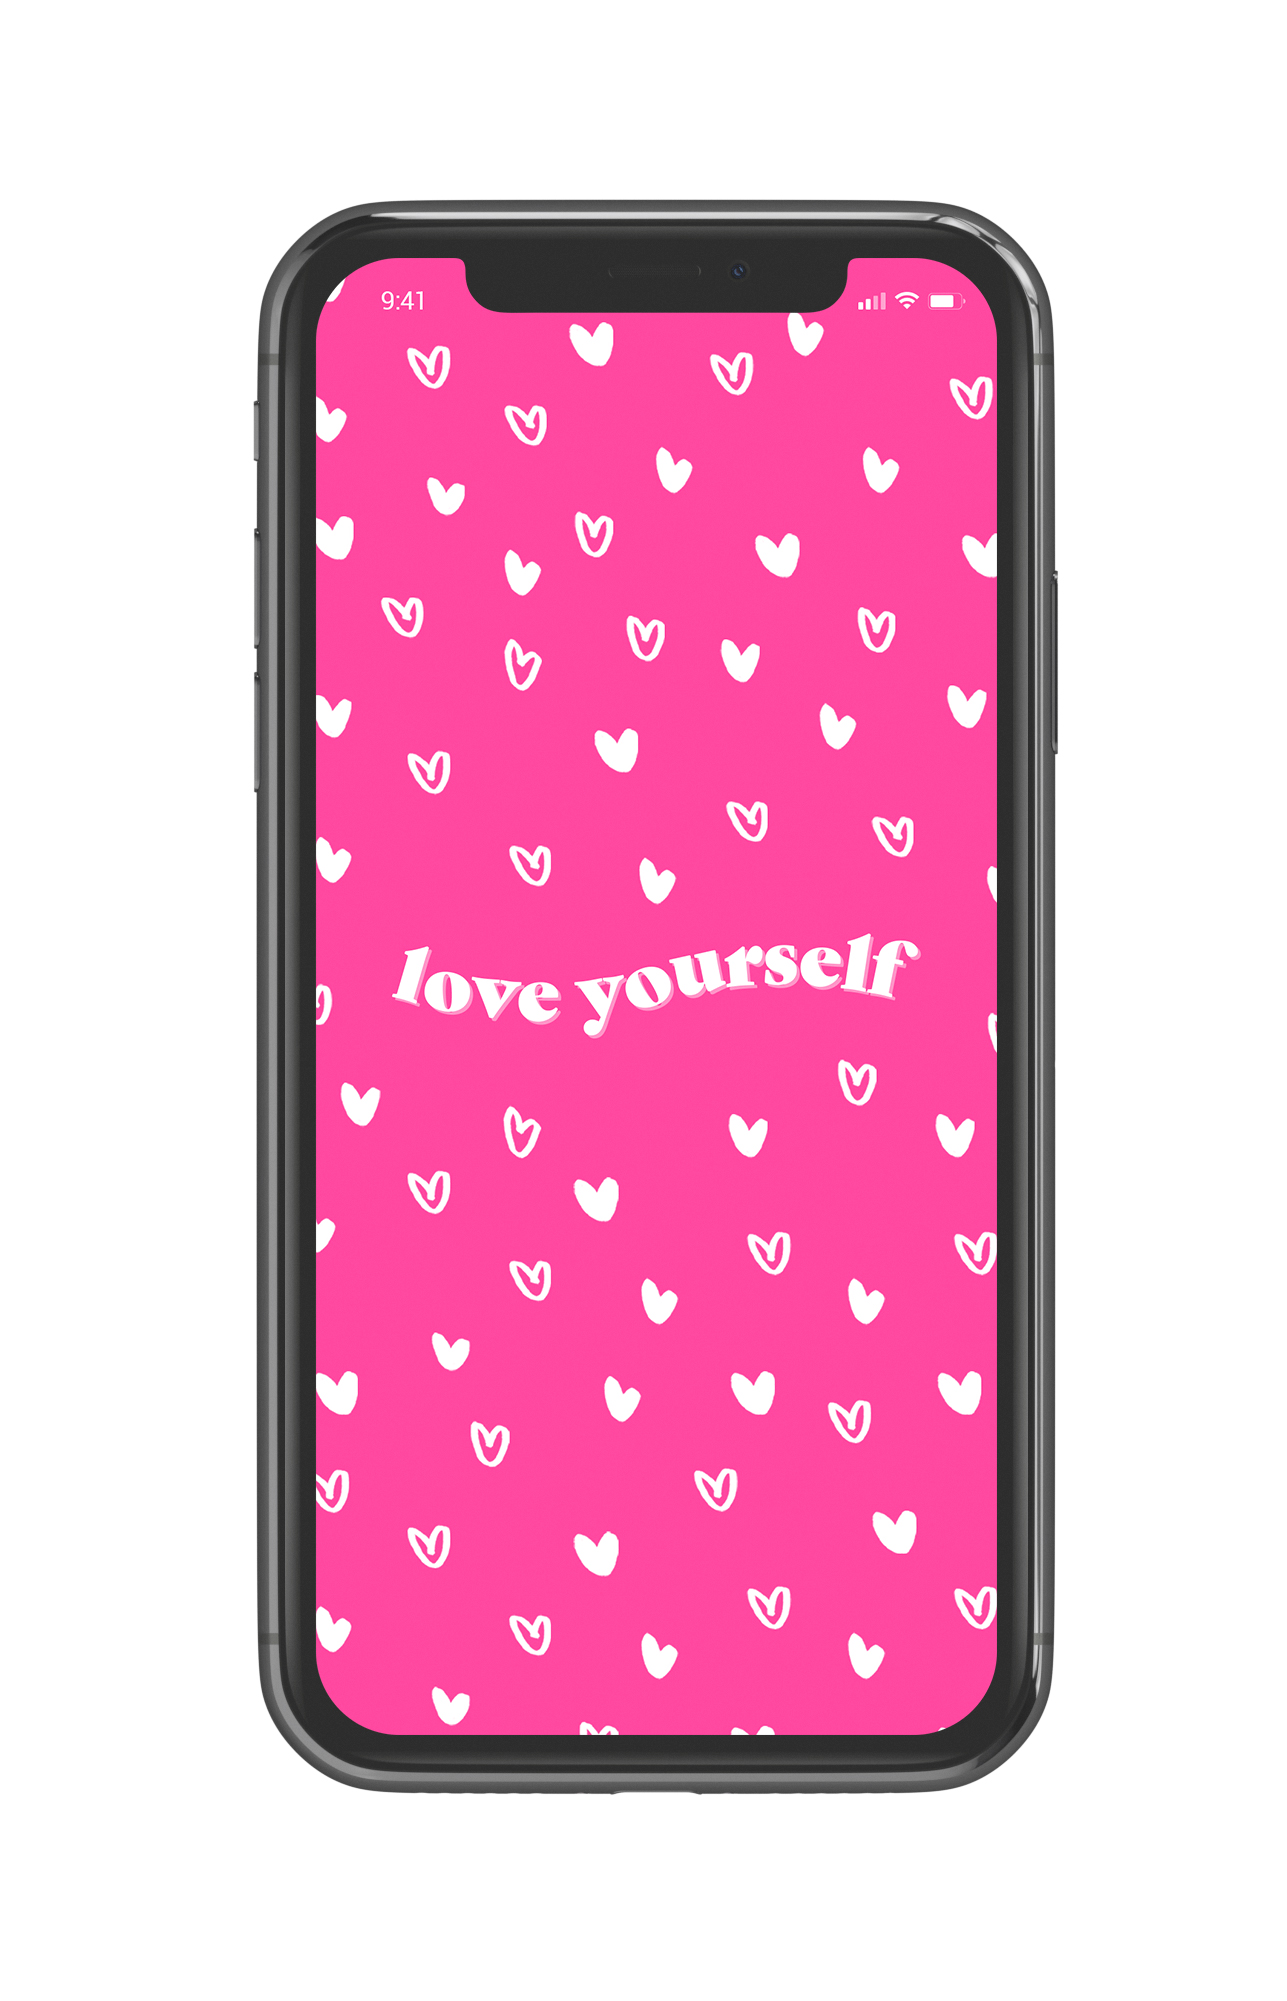 iPhone-X-Mock-Up.jpg